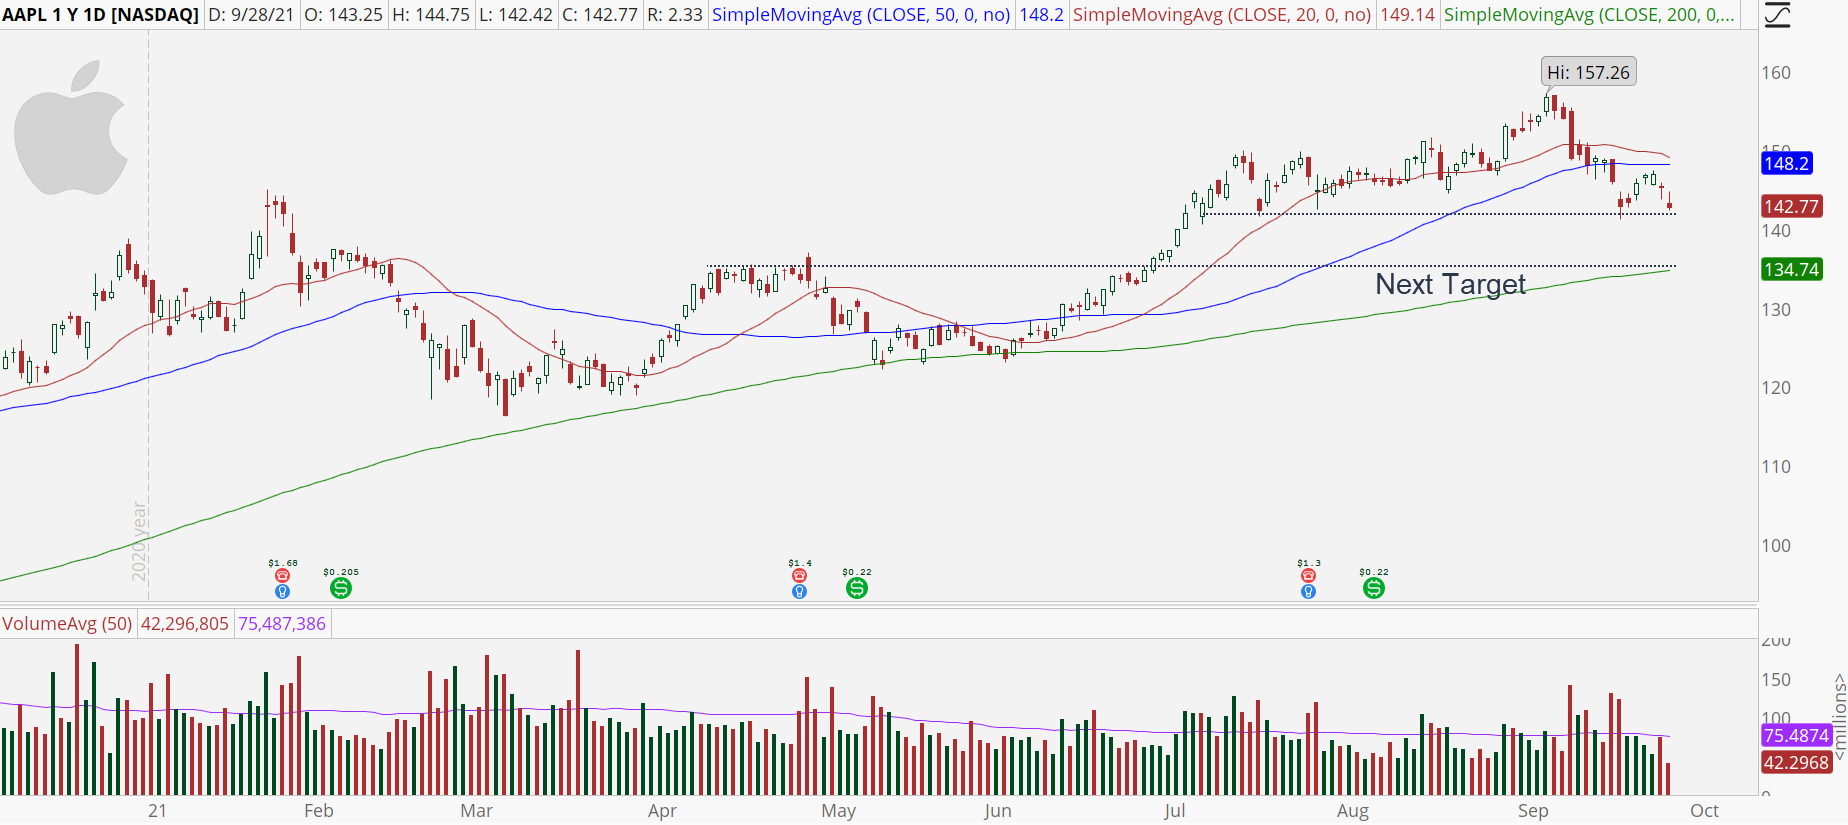 Apple (AAPL) stock chart with daily downtrend.